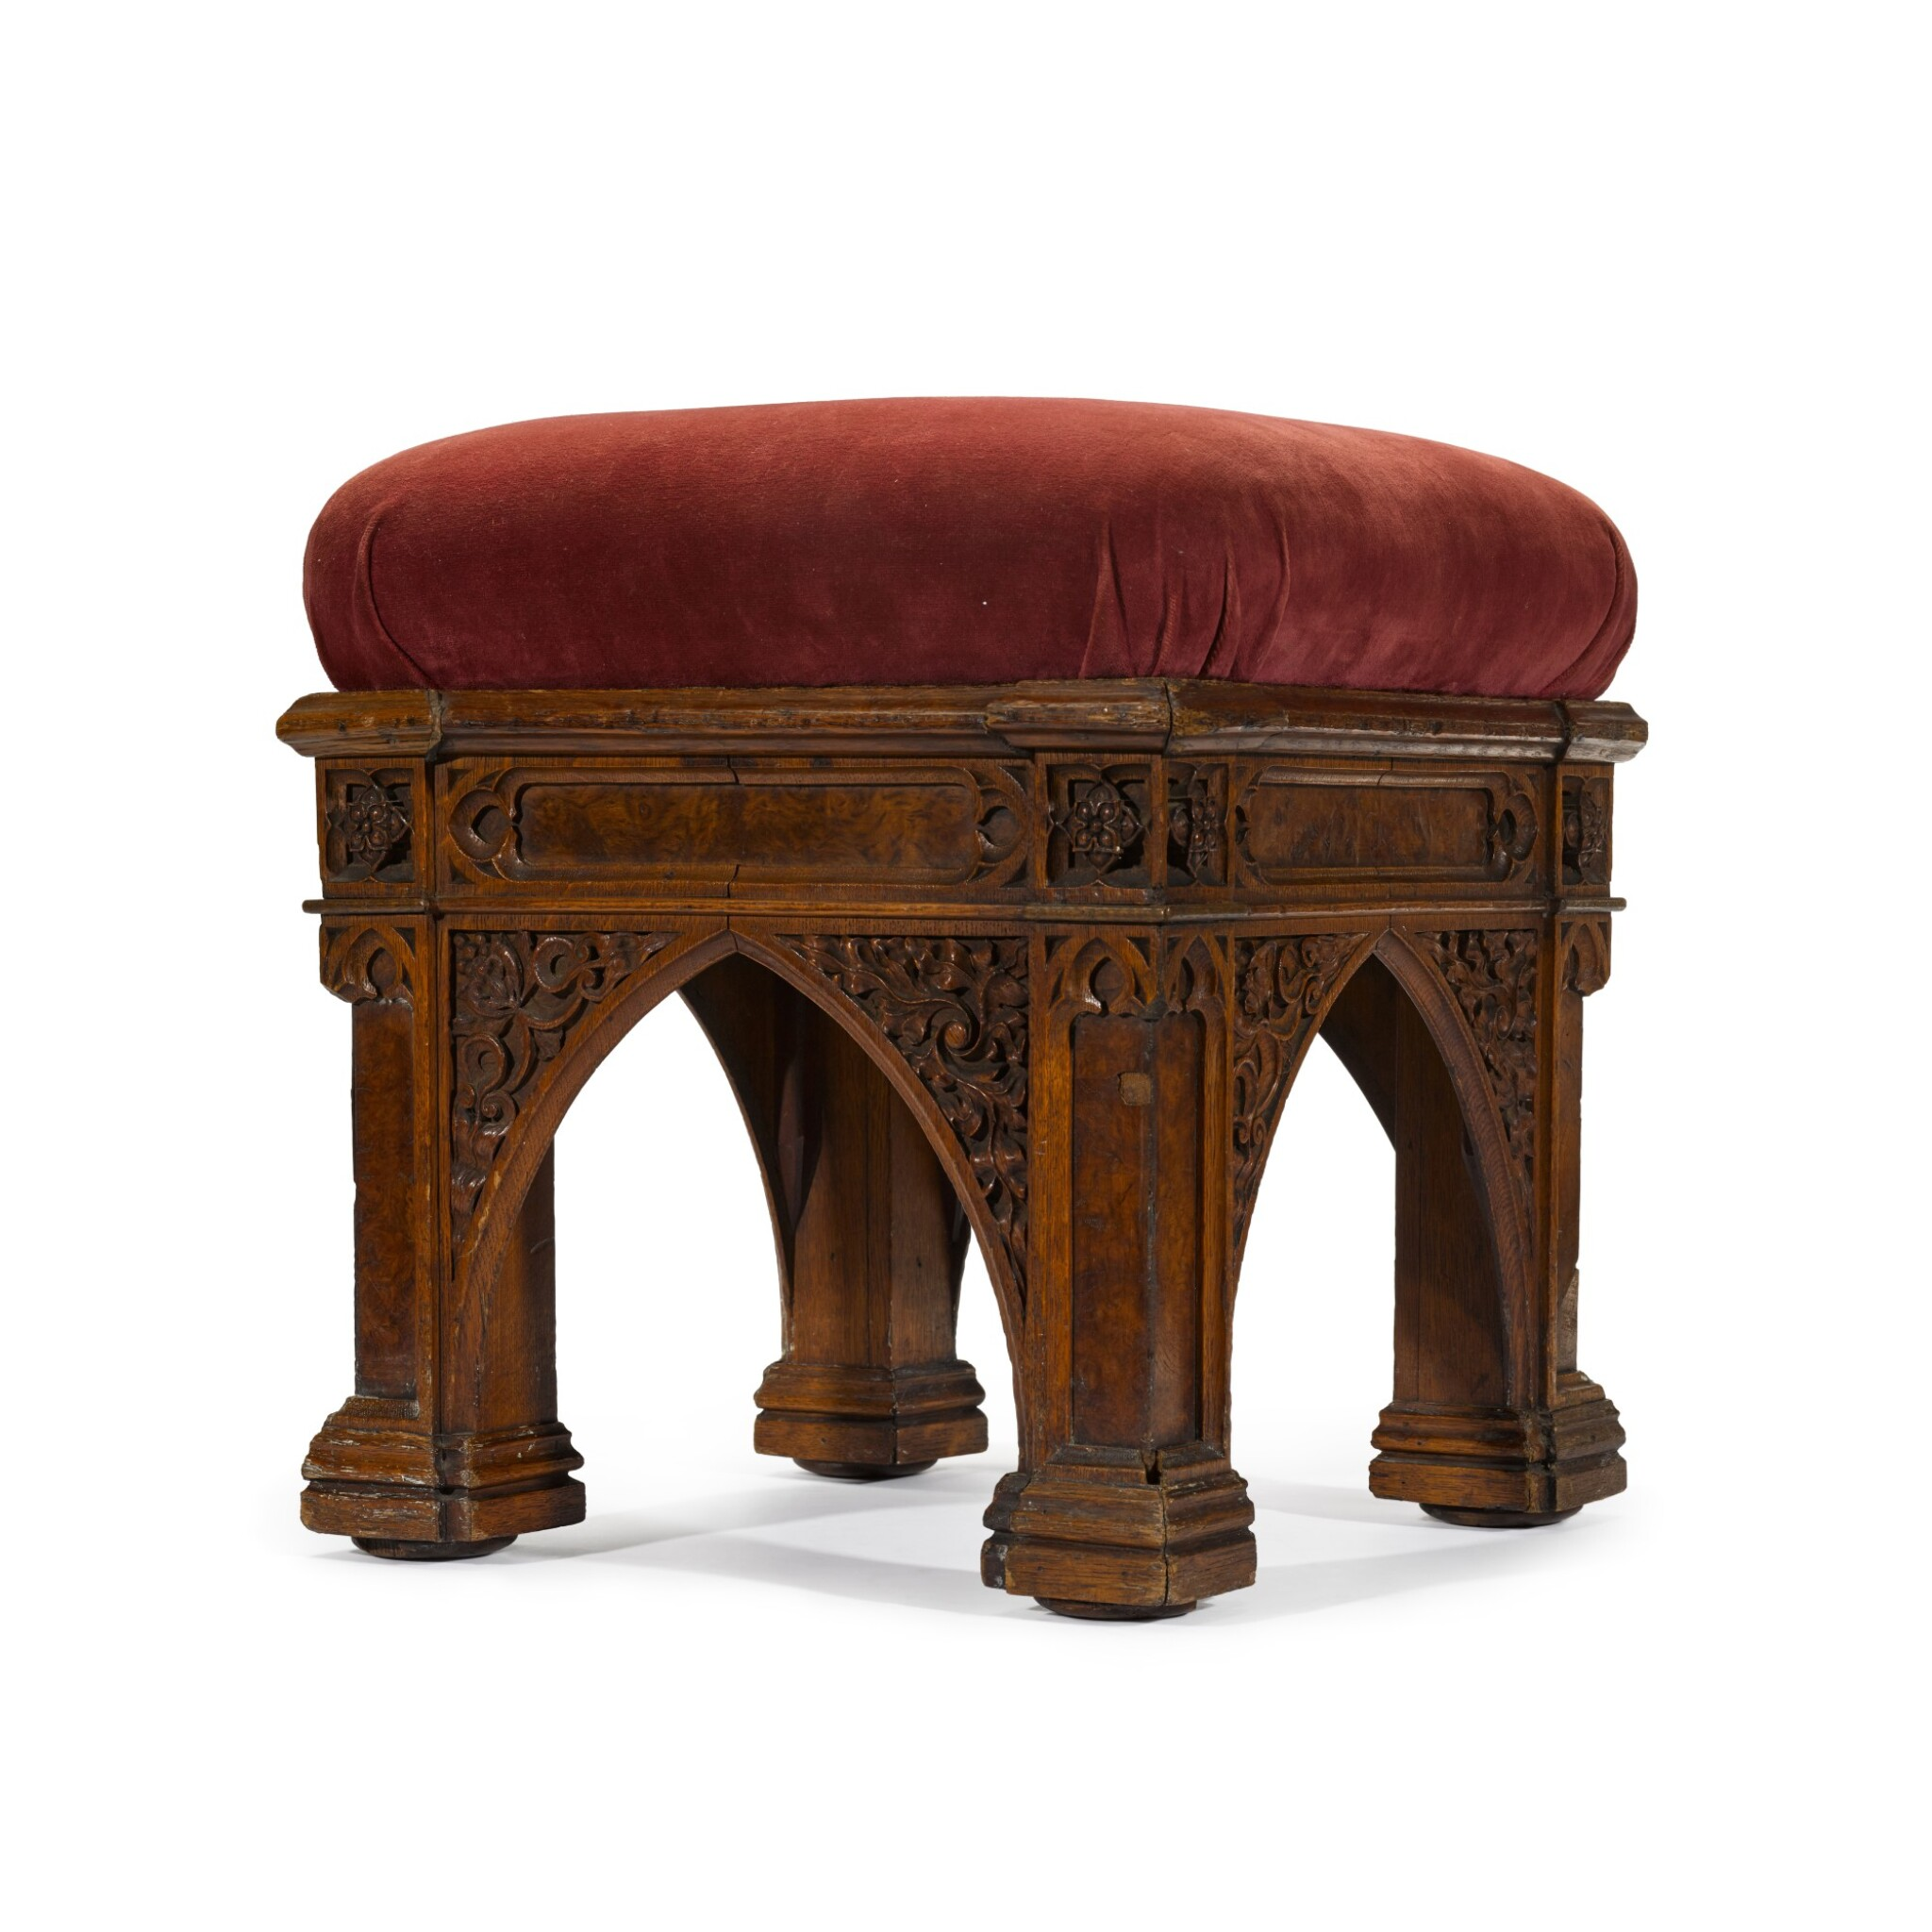 View full screen - View 1 of Lot 168. A George IV carved and pollarded oak stool by Morel and Seddon, circa 1827-28, the design attributed to A. W. N. Pugin.